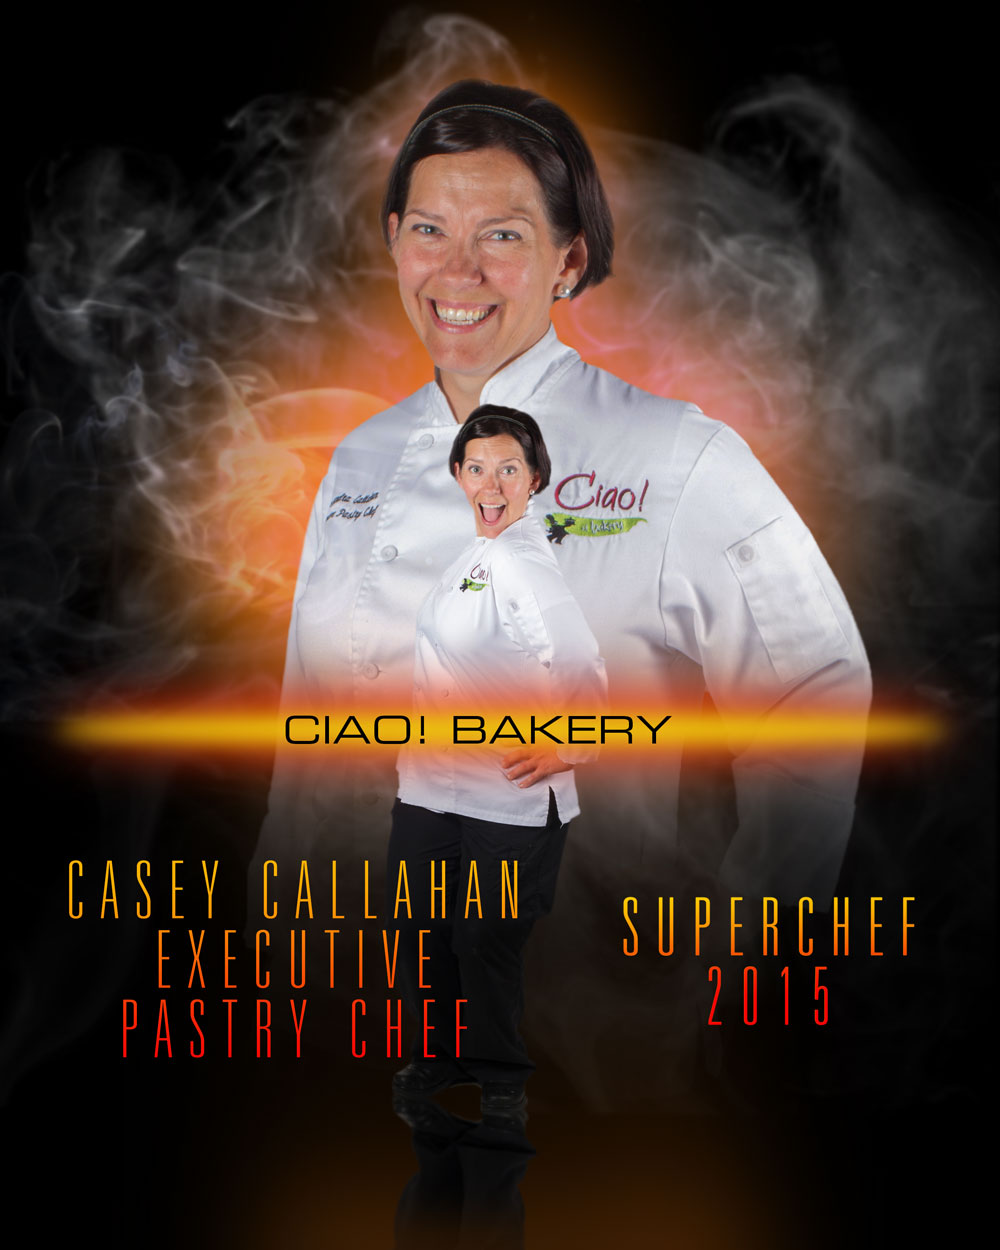 Casey Callahan, Executive Pastry Chef